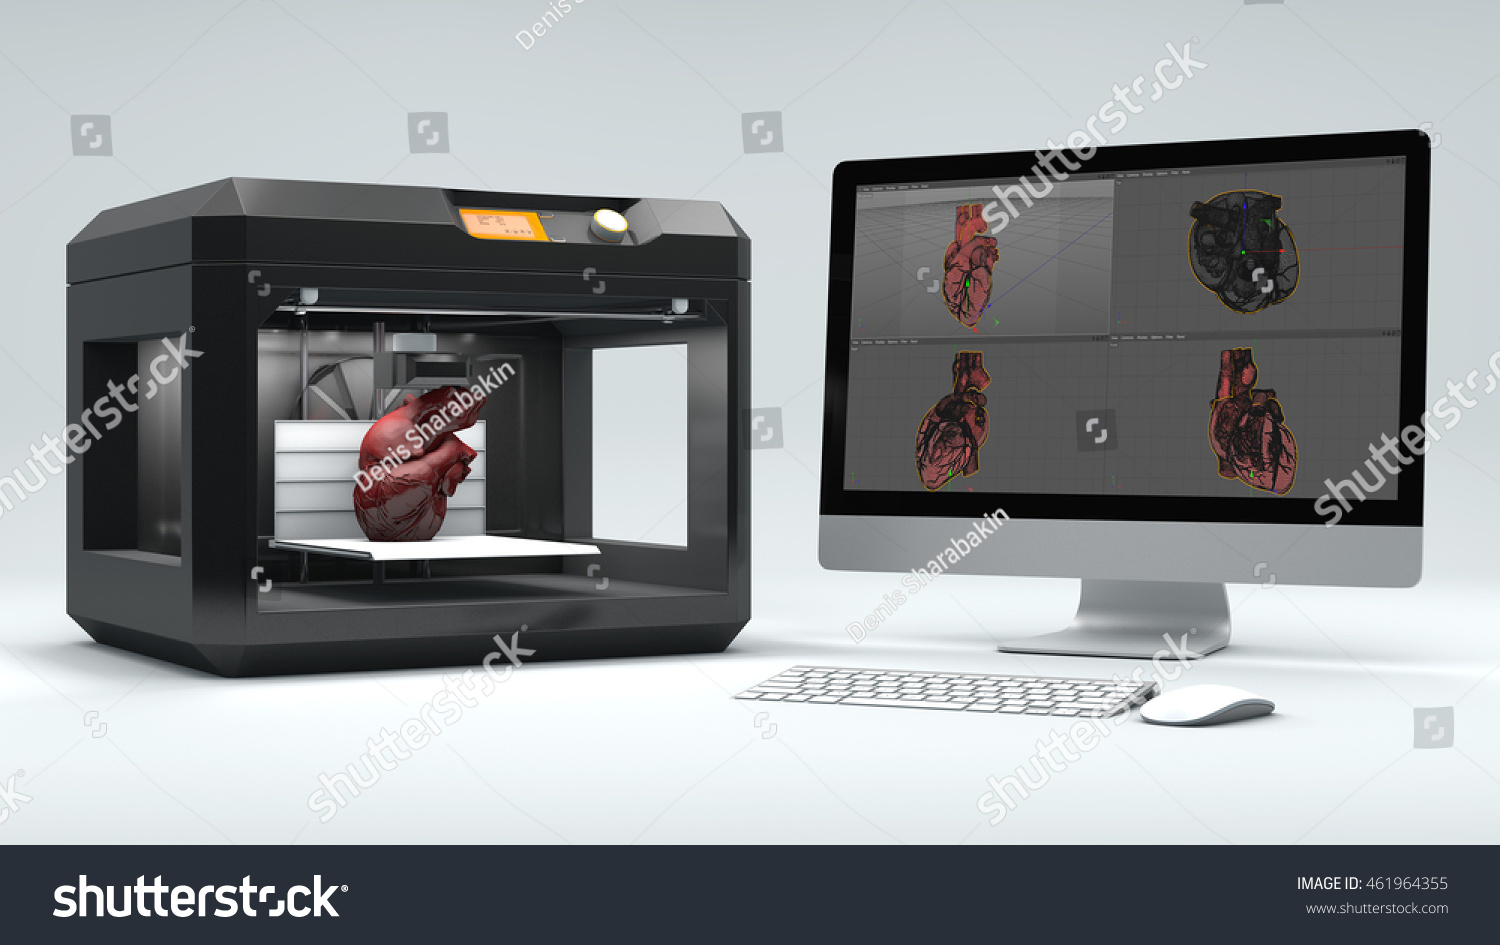 Online image photo editor shutterstock editor for 3d editor online